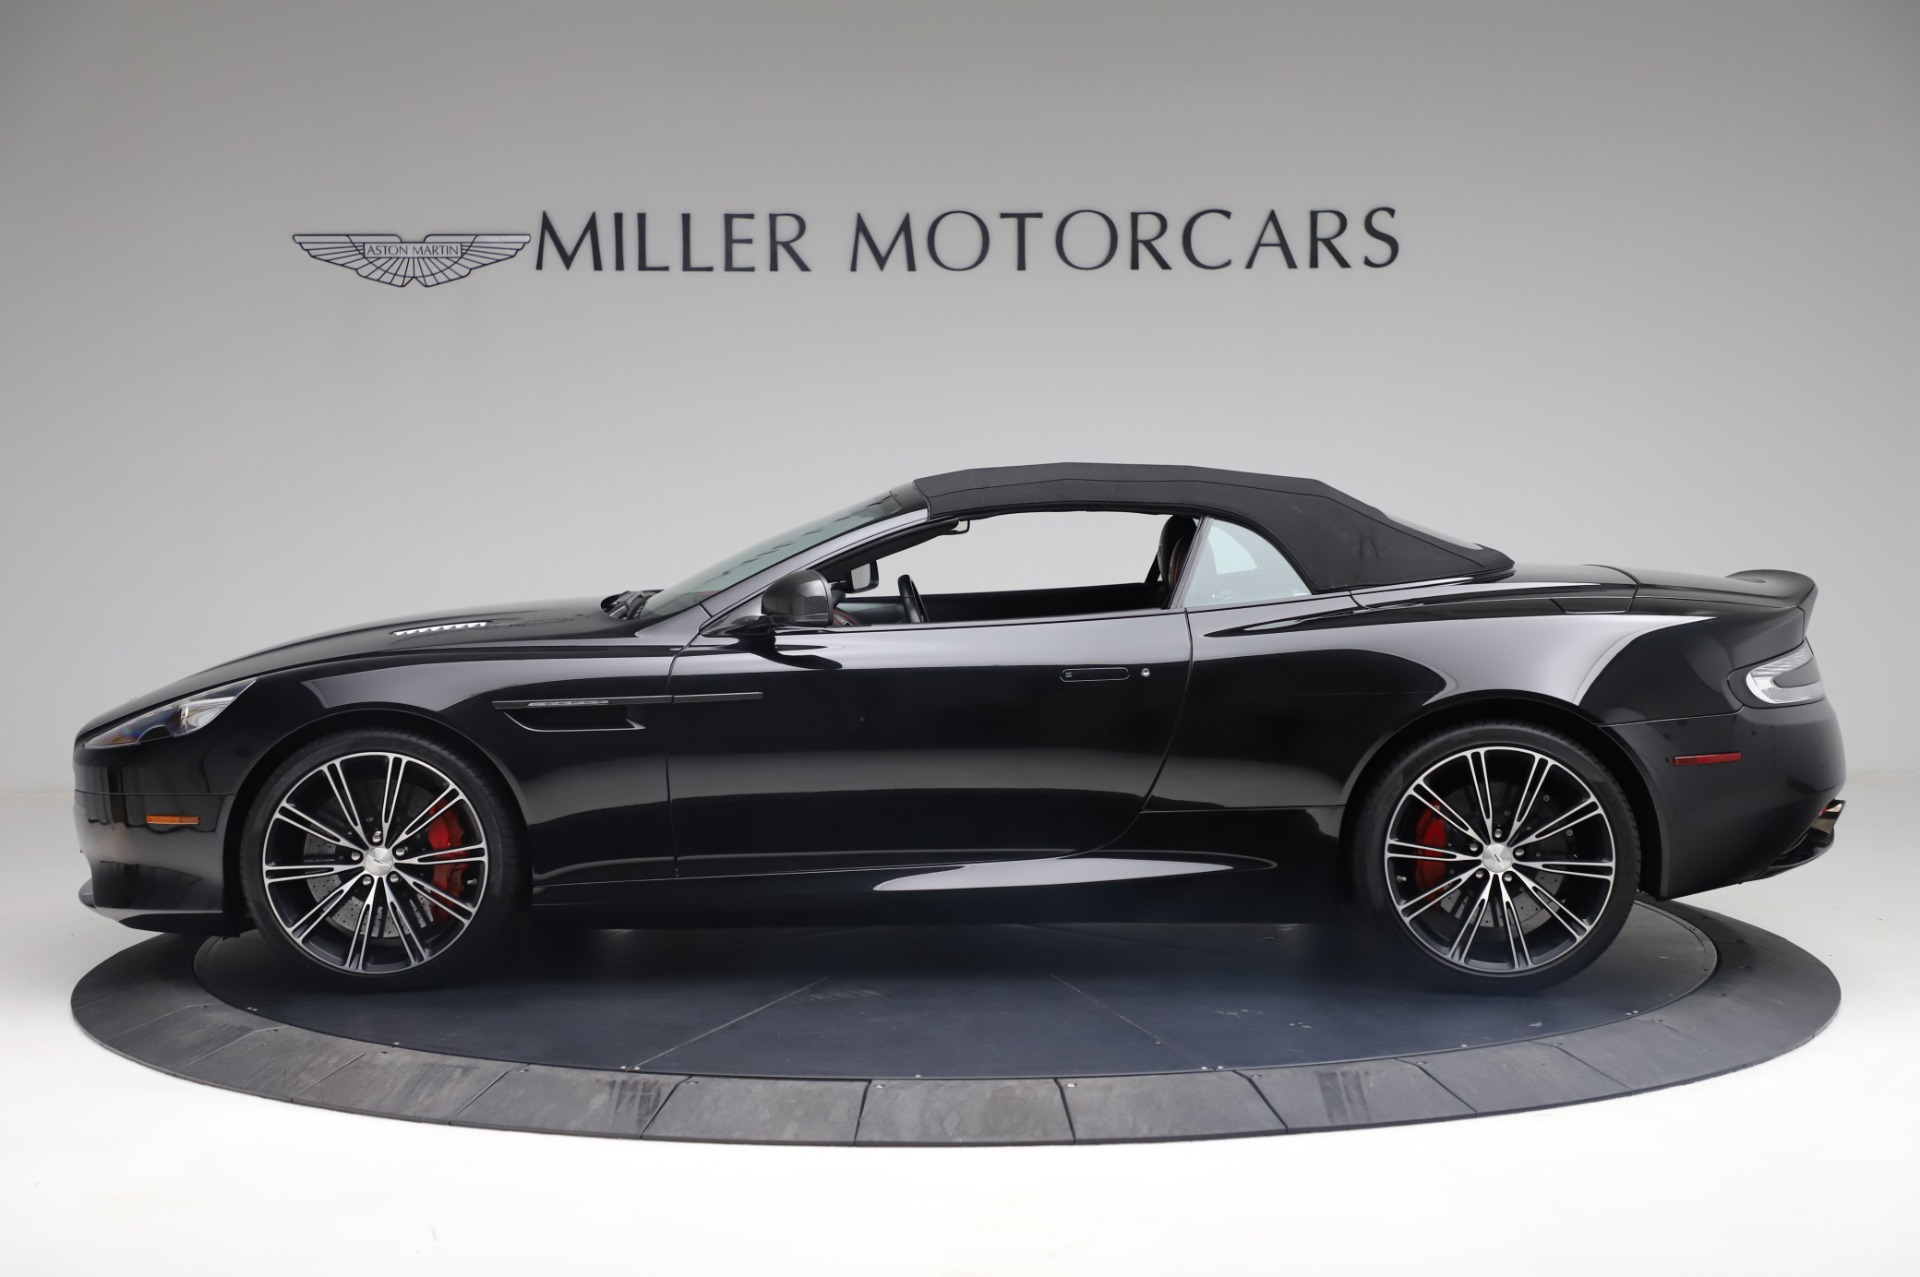 Used 2015 Aston Martin DB9 Convertible For Sale In Westport, CT 1919_p14